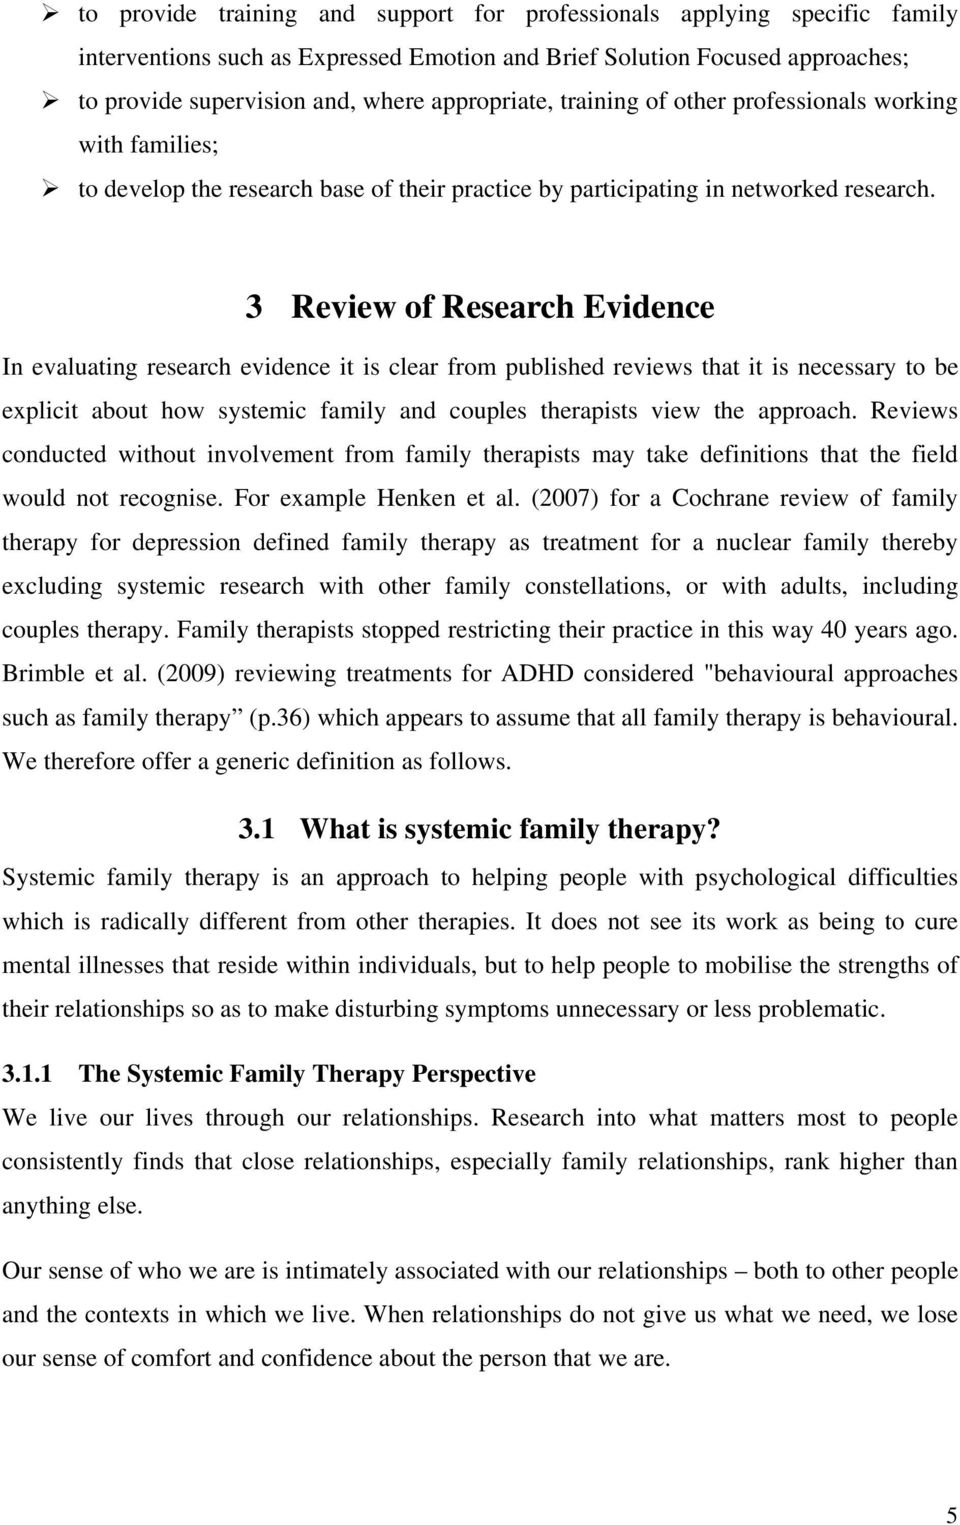 3 Review of Research Evidence In evaluating research evidence it is clear from published reviews that it is necessary to be explicit about how systemic family and couples therapists view the approach.